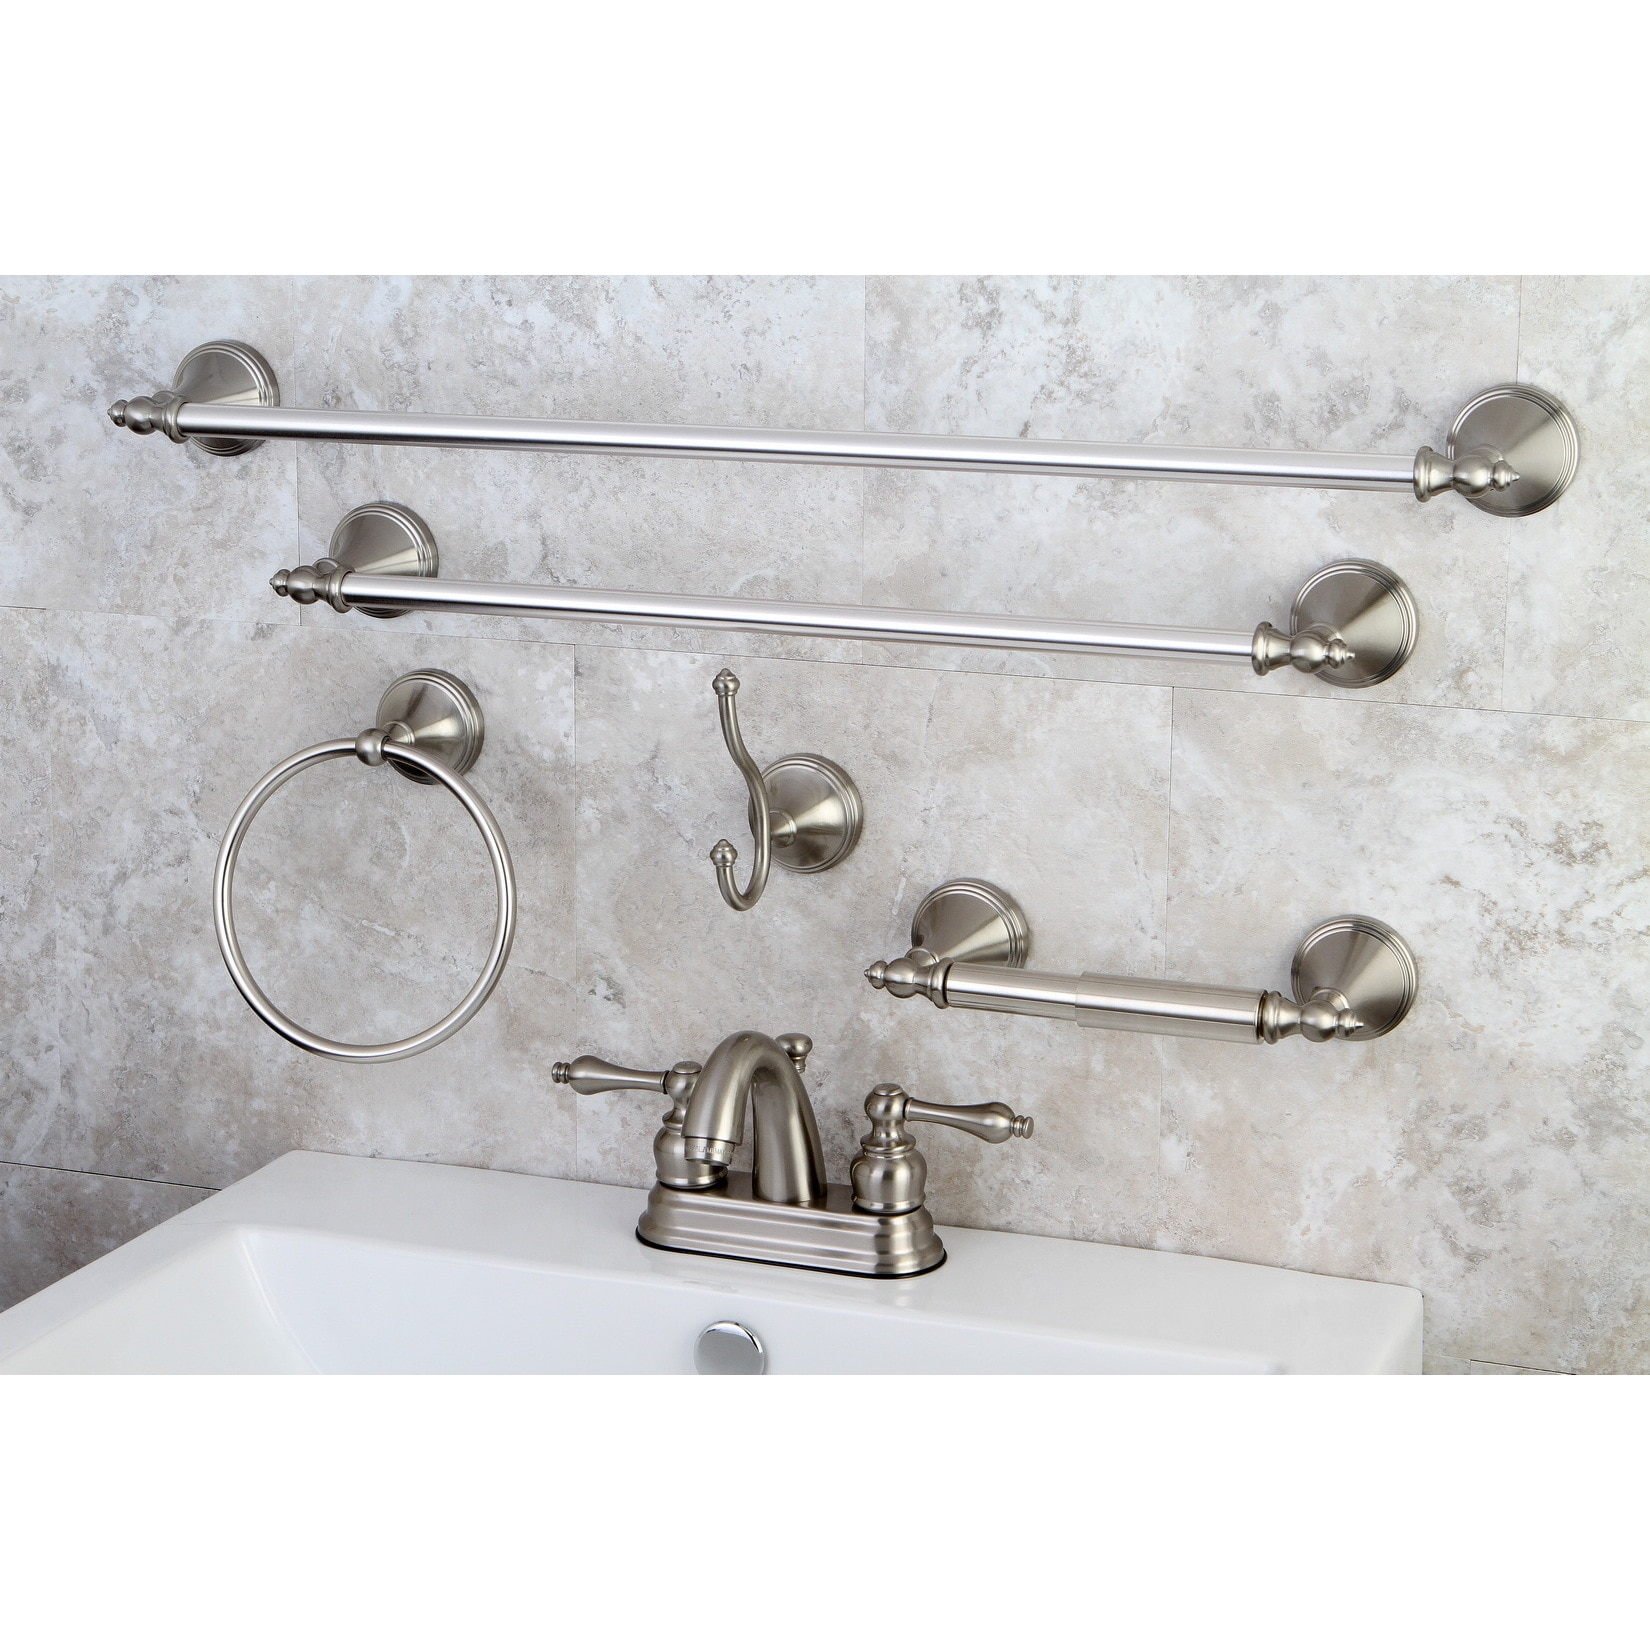 Shop Modern Satin Nickel Metal Faucet Towel Rack Bathroom Faucet ...